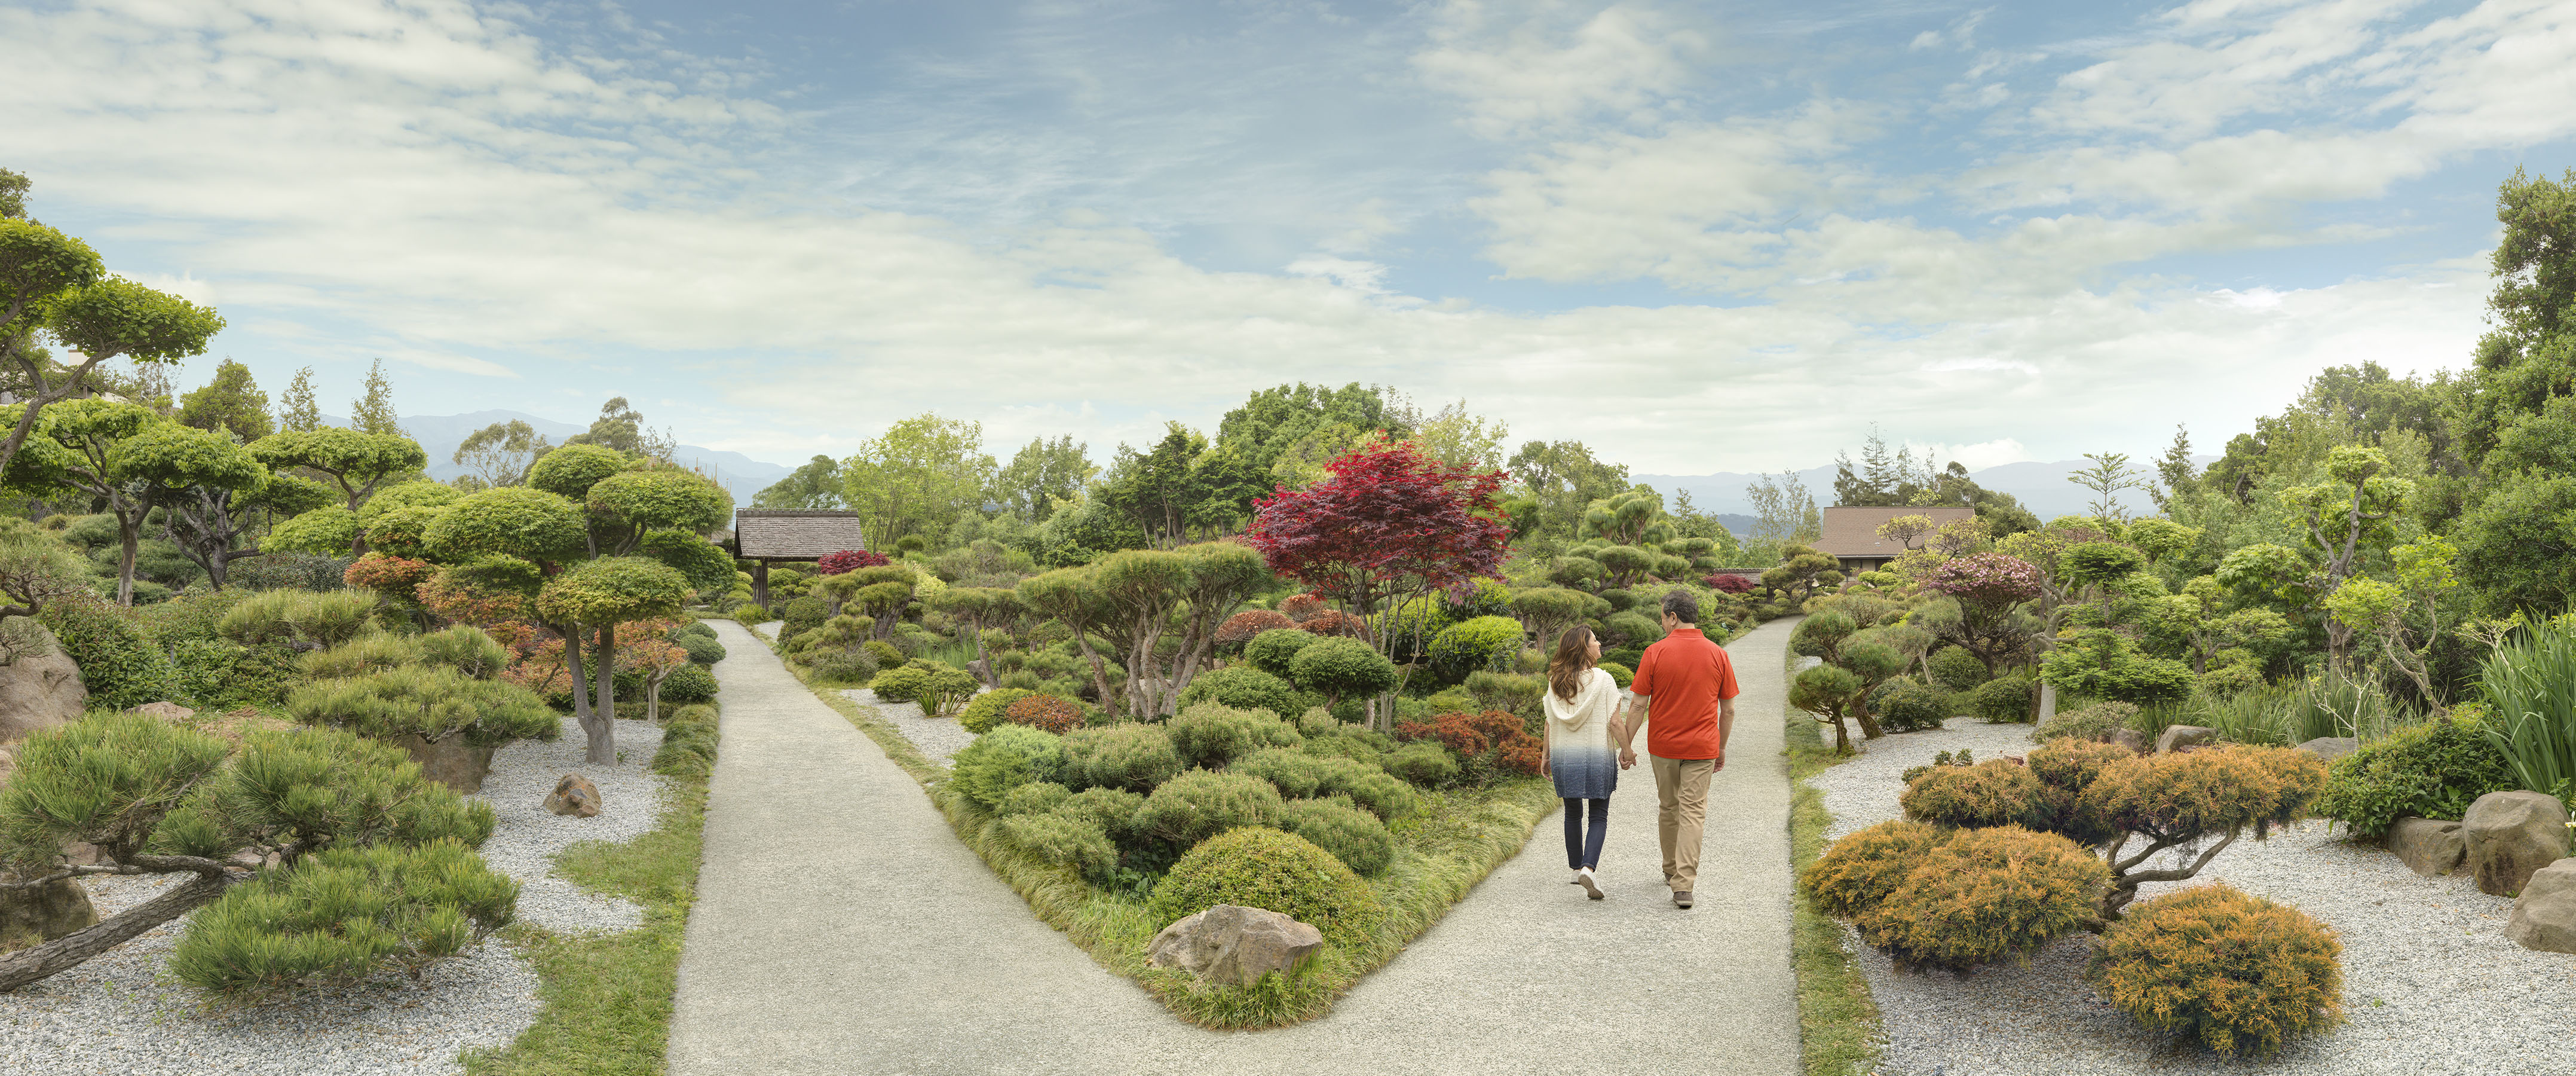 BayerJapaneseGarden_LAYERS28hispaniccouplelowres